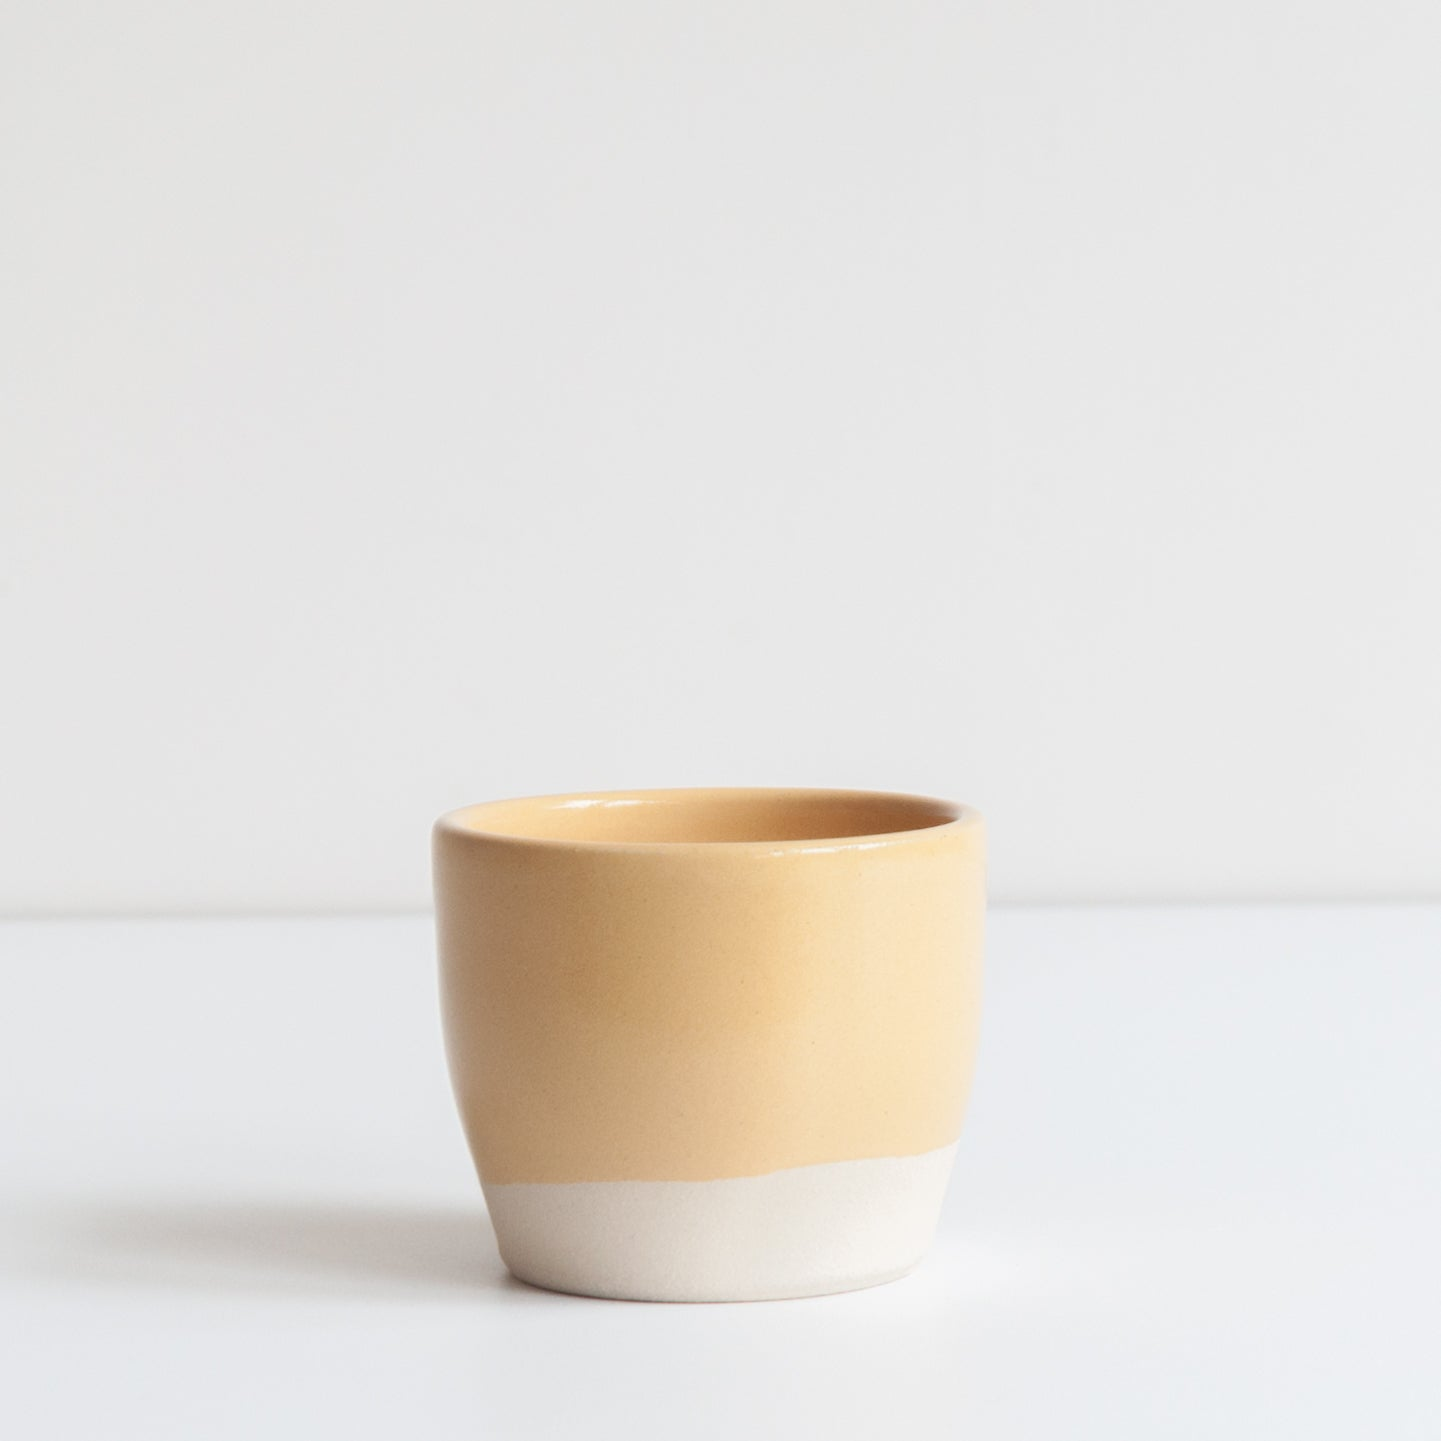 Tea Bowl - Gorse Yellow, Stoneware - DOR & TAN | Contemporary Handmade Tableware